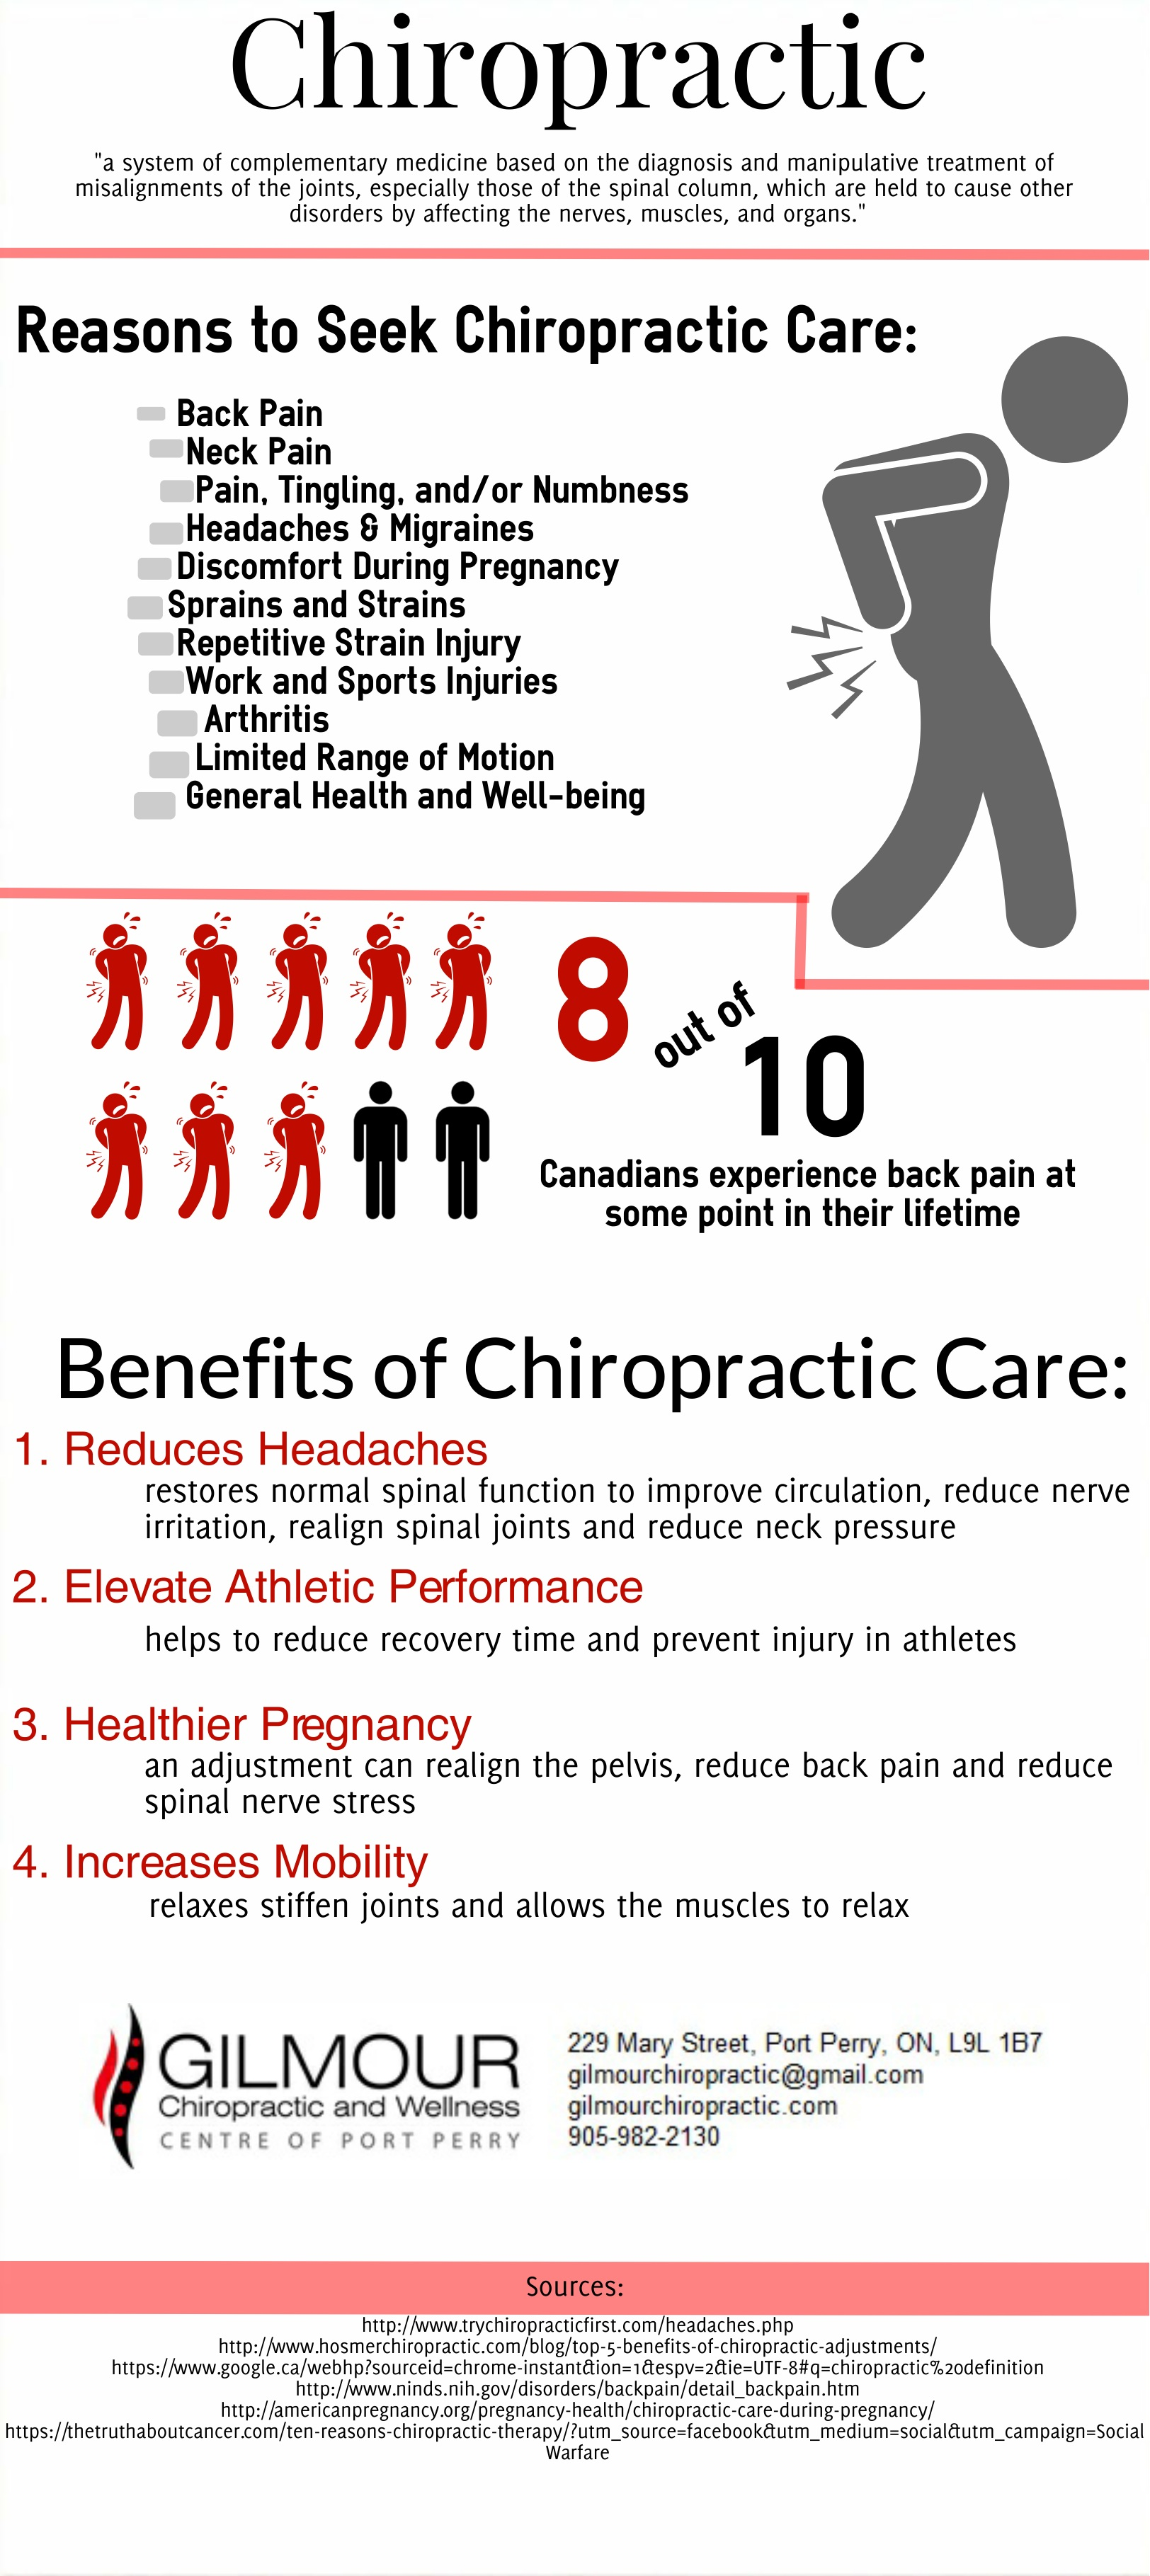 Benefits of Chiropractics.jpg